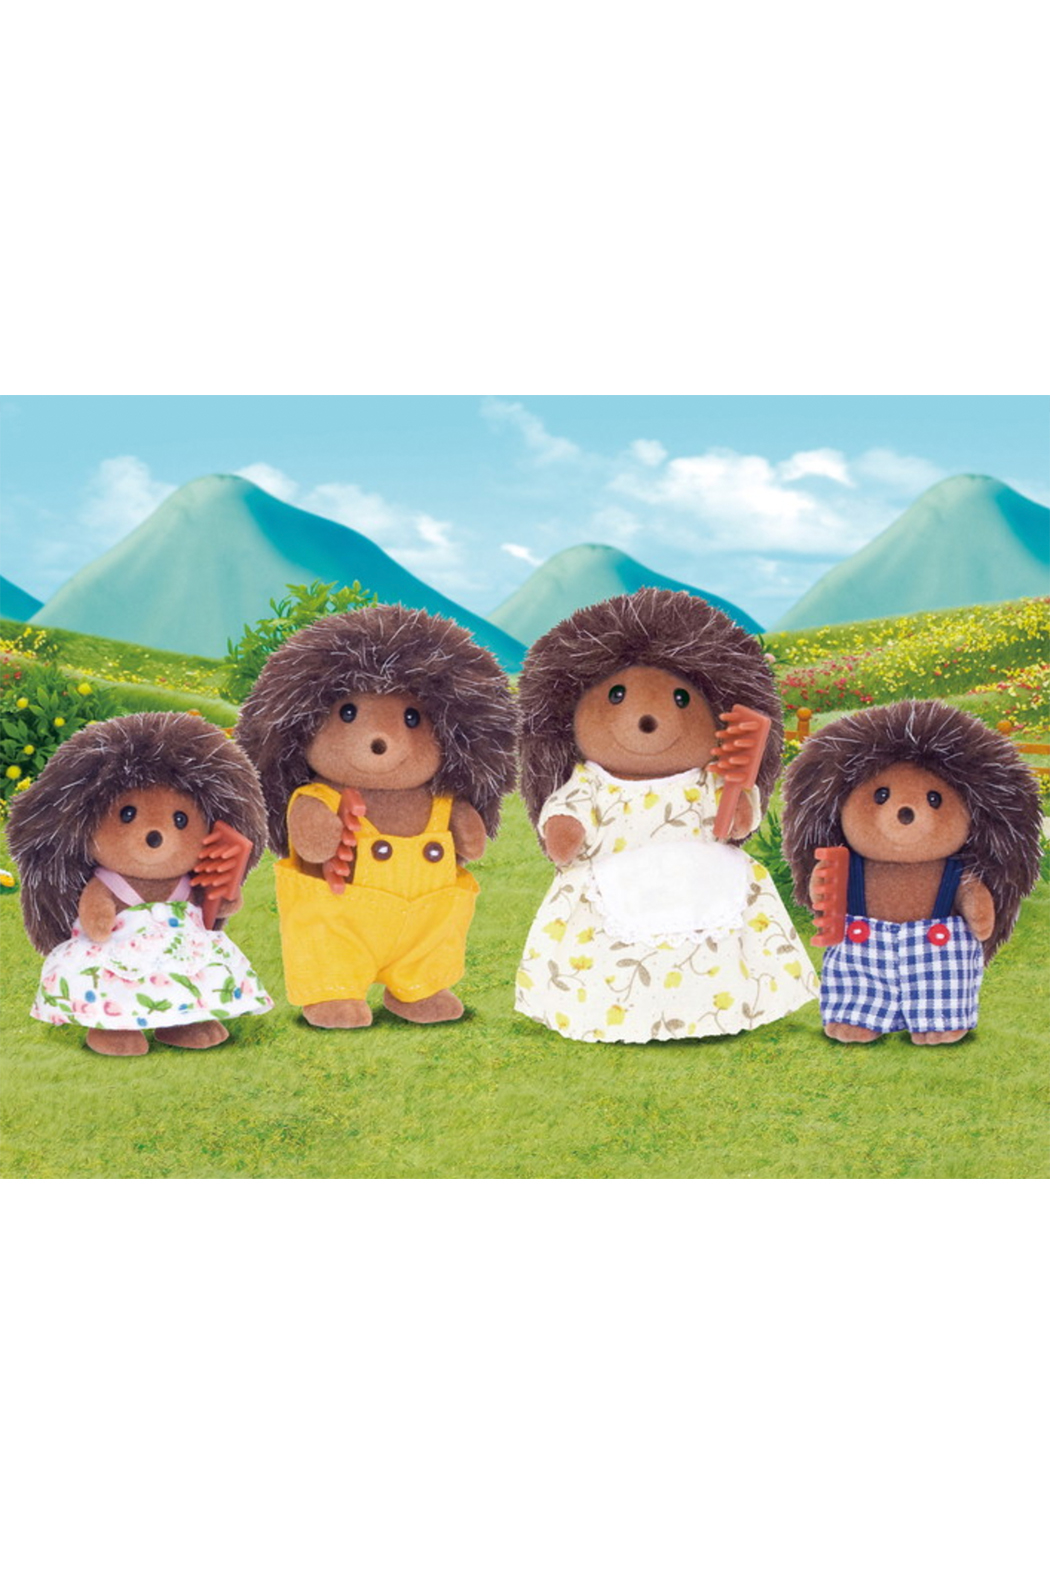 Calico Critters Pickleweeds Hedgehog Family - Main Image